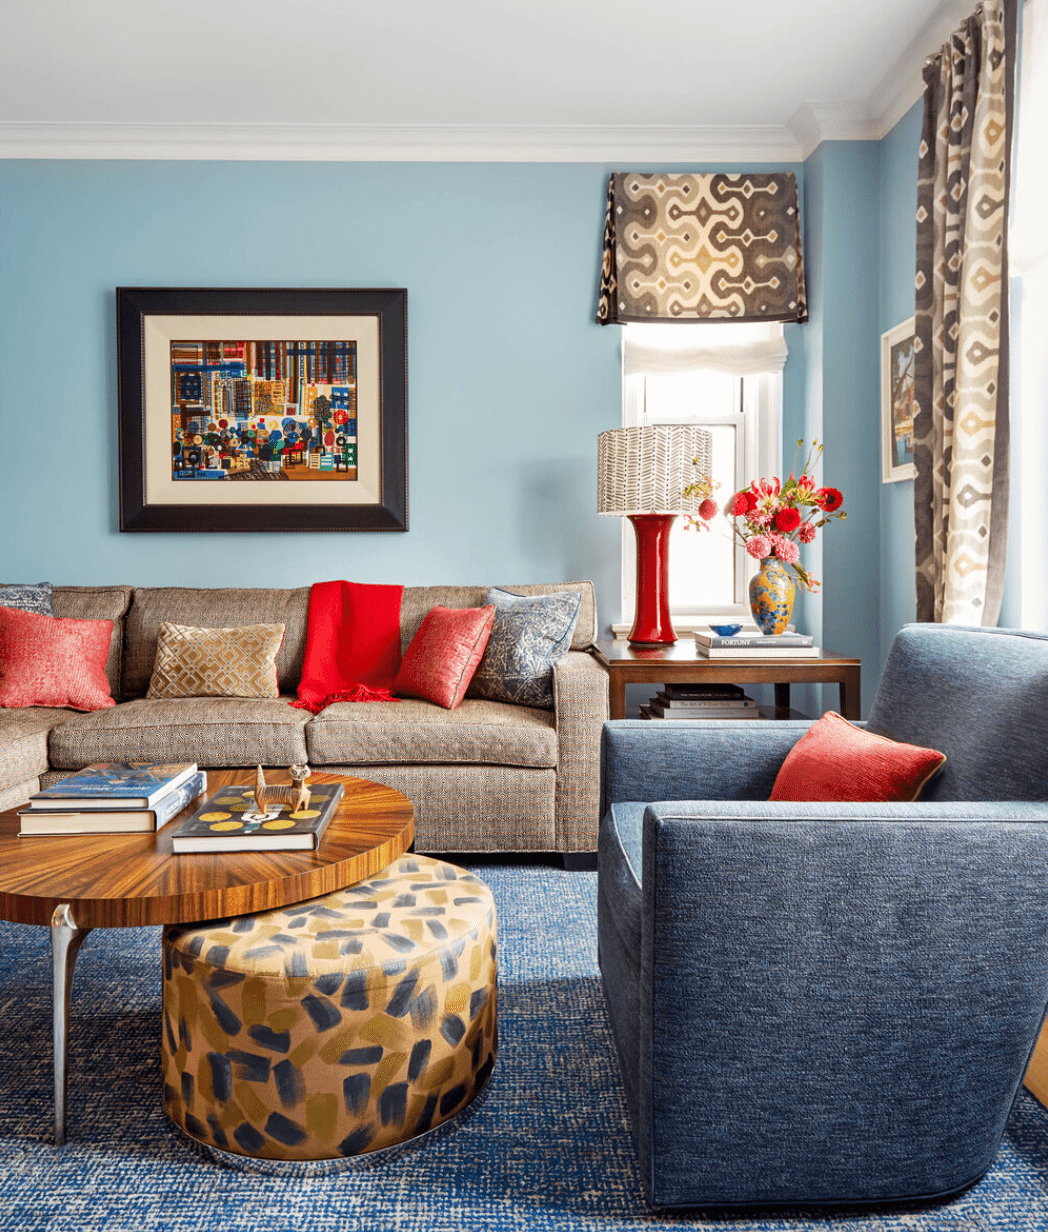 Bohemian-inspired living room with bold, contrasting colors